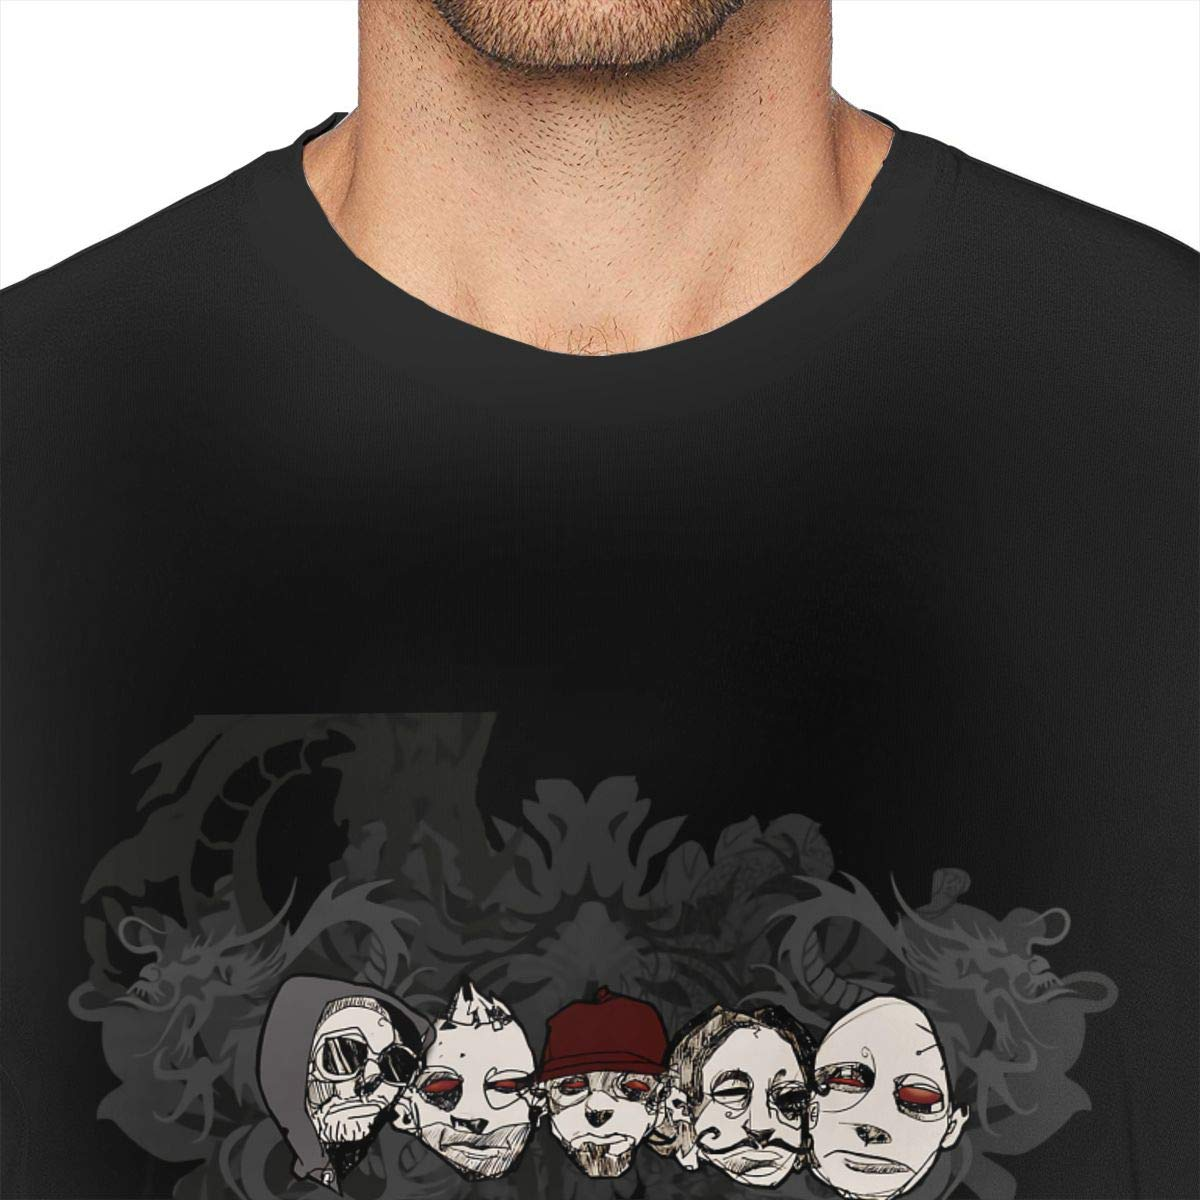 Hodenr Mens Fashion Limp Bizkit Tees Black